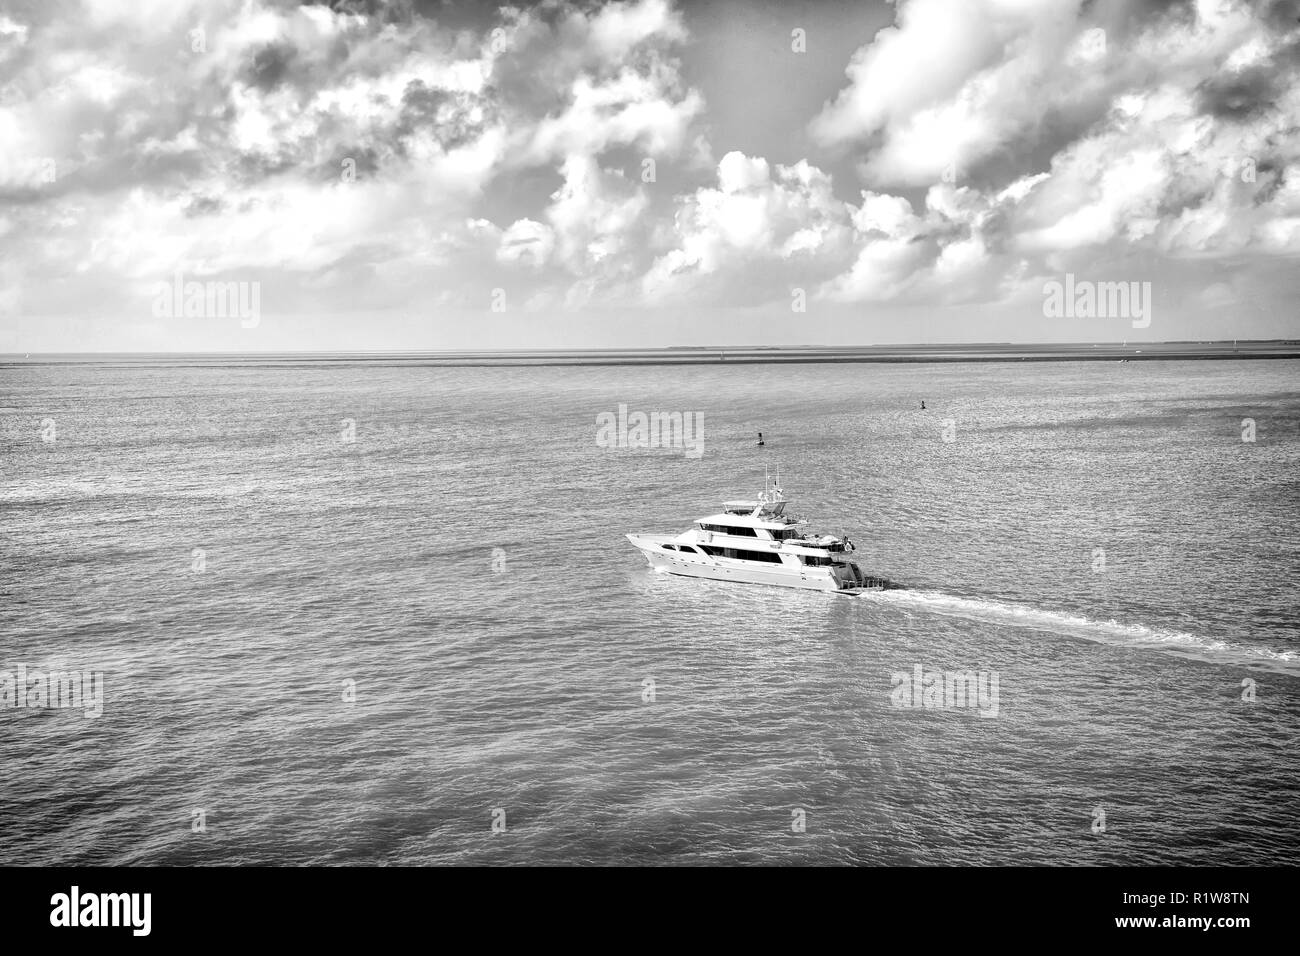 Adventure discovery journey. Yacht sail in turquoise sea on cloudy sky. Water transport, vessel, boat, transportation. Vacation wanderlust travelling. Luxury lifestyle concept. - Stock Image